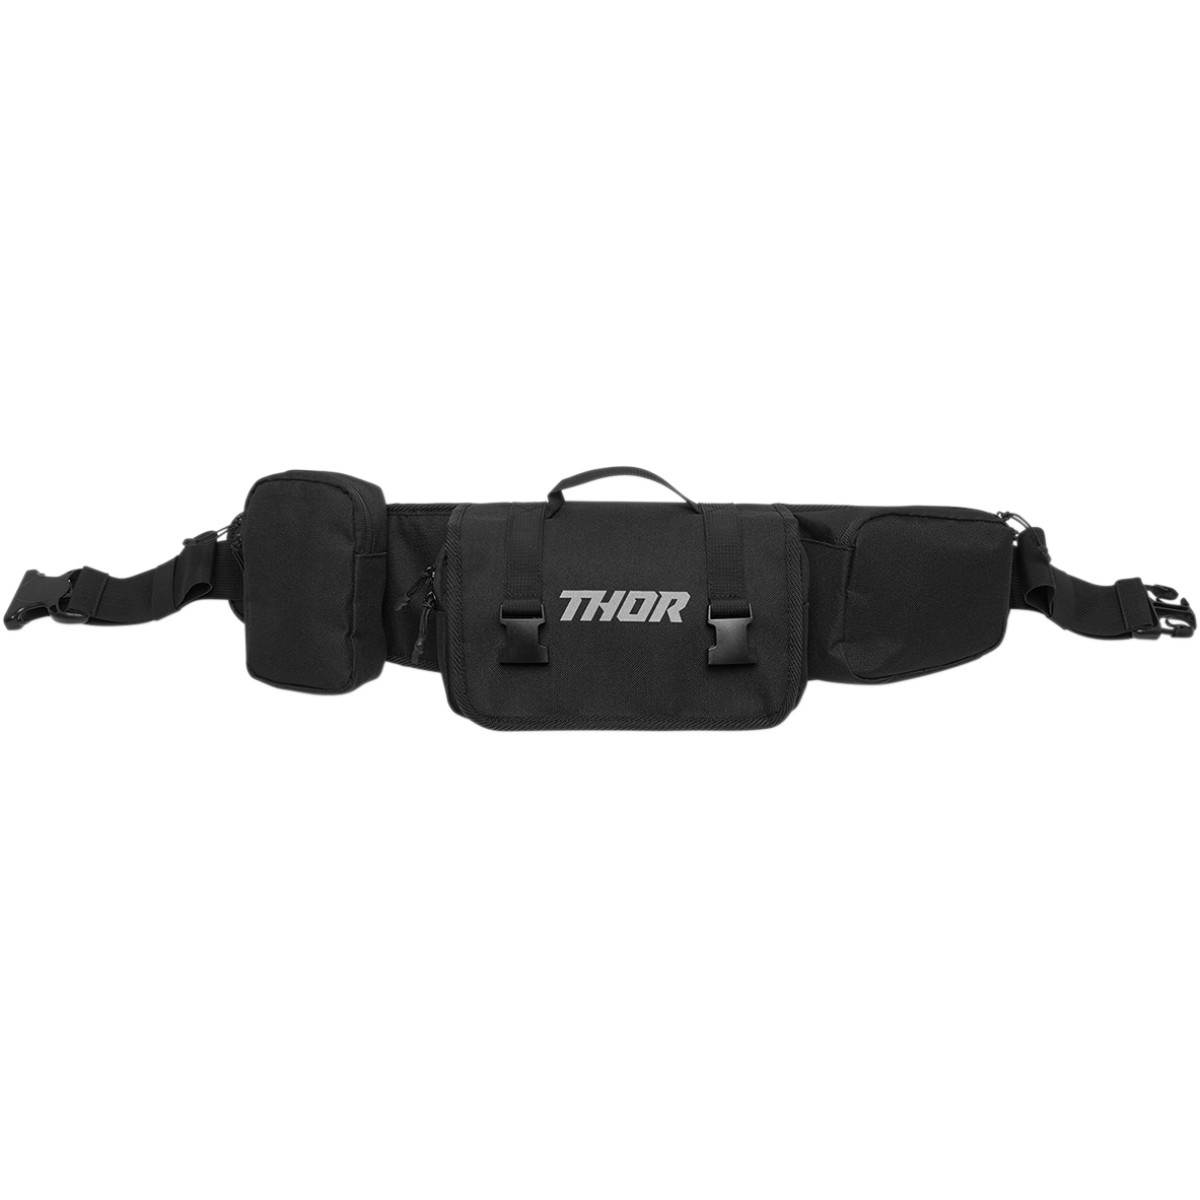 Thor MX Motocross Vapor Hydration Pack 1.5L Gray//Black